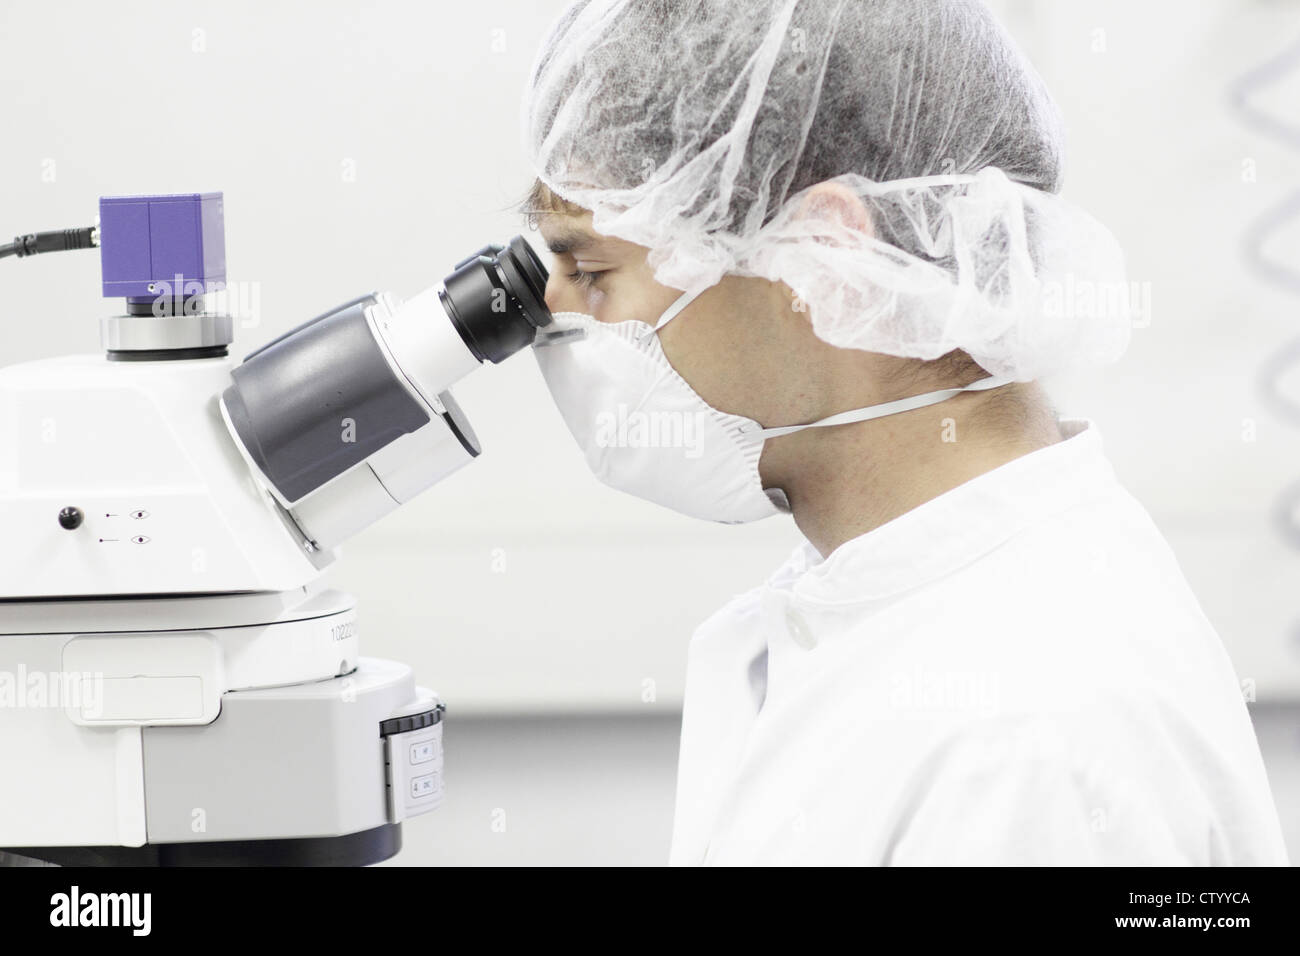 Scientist using microscope in lab Photo Stock